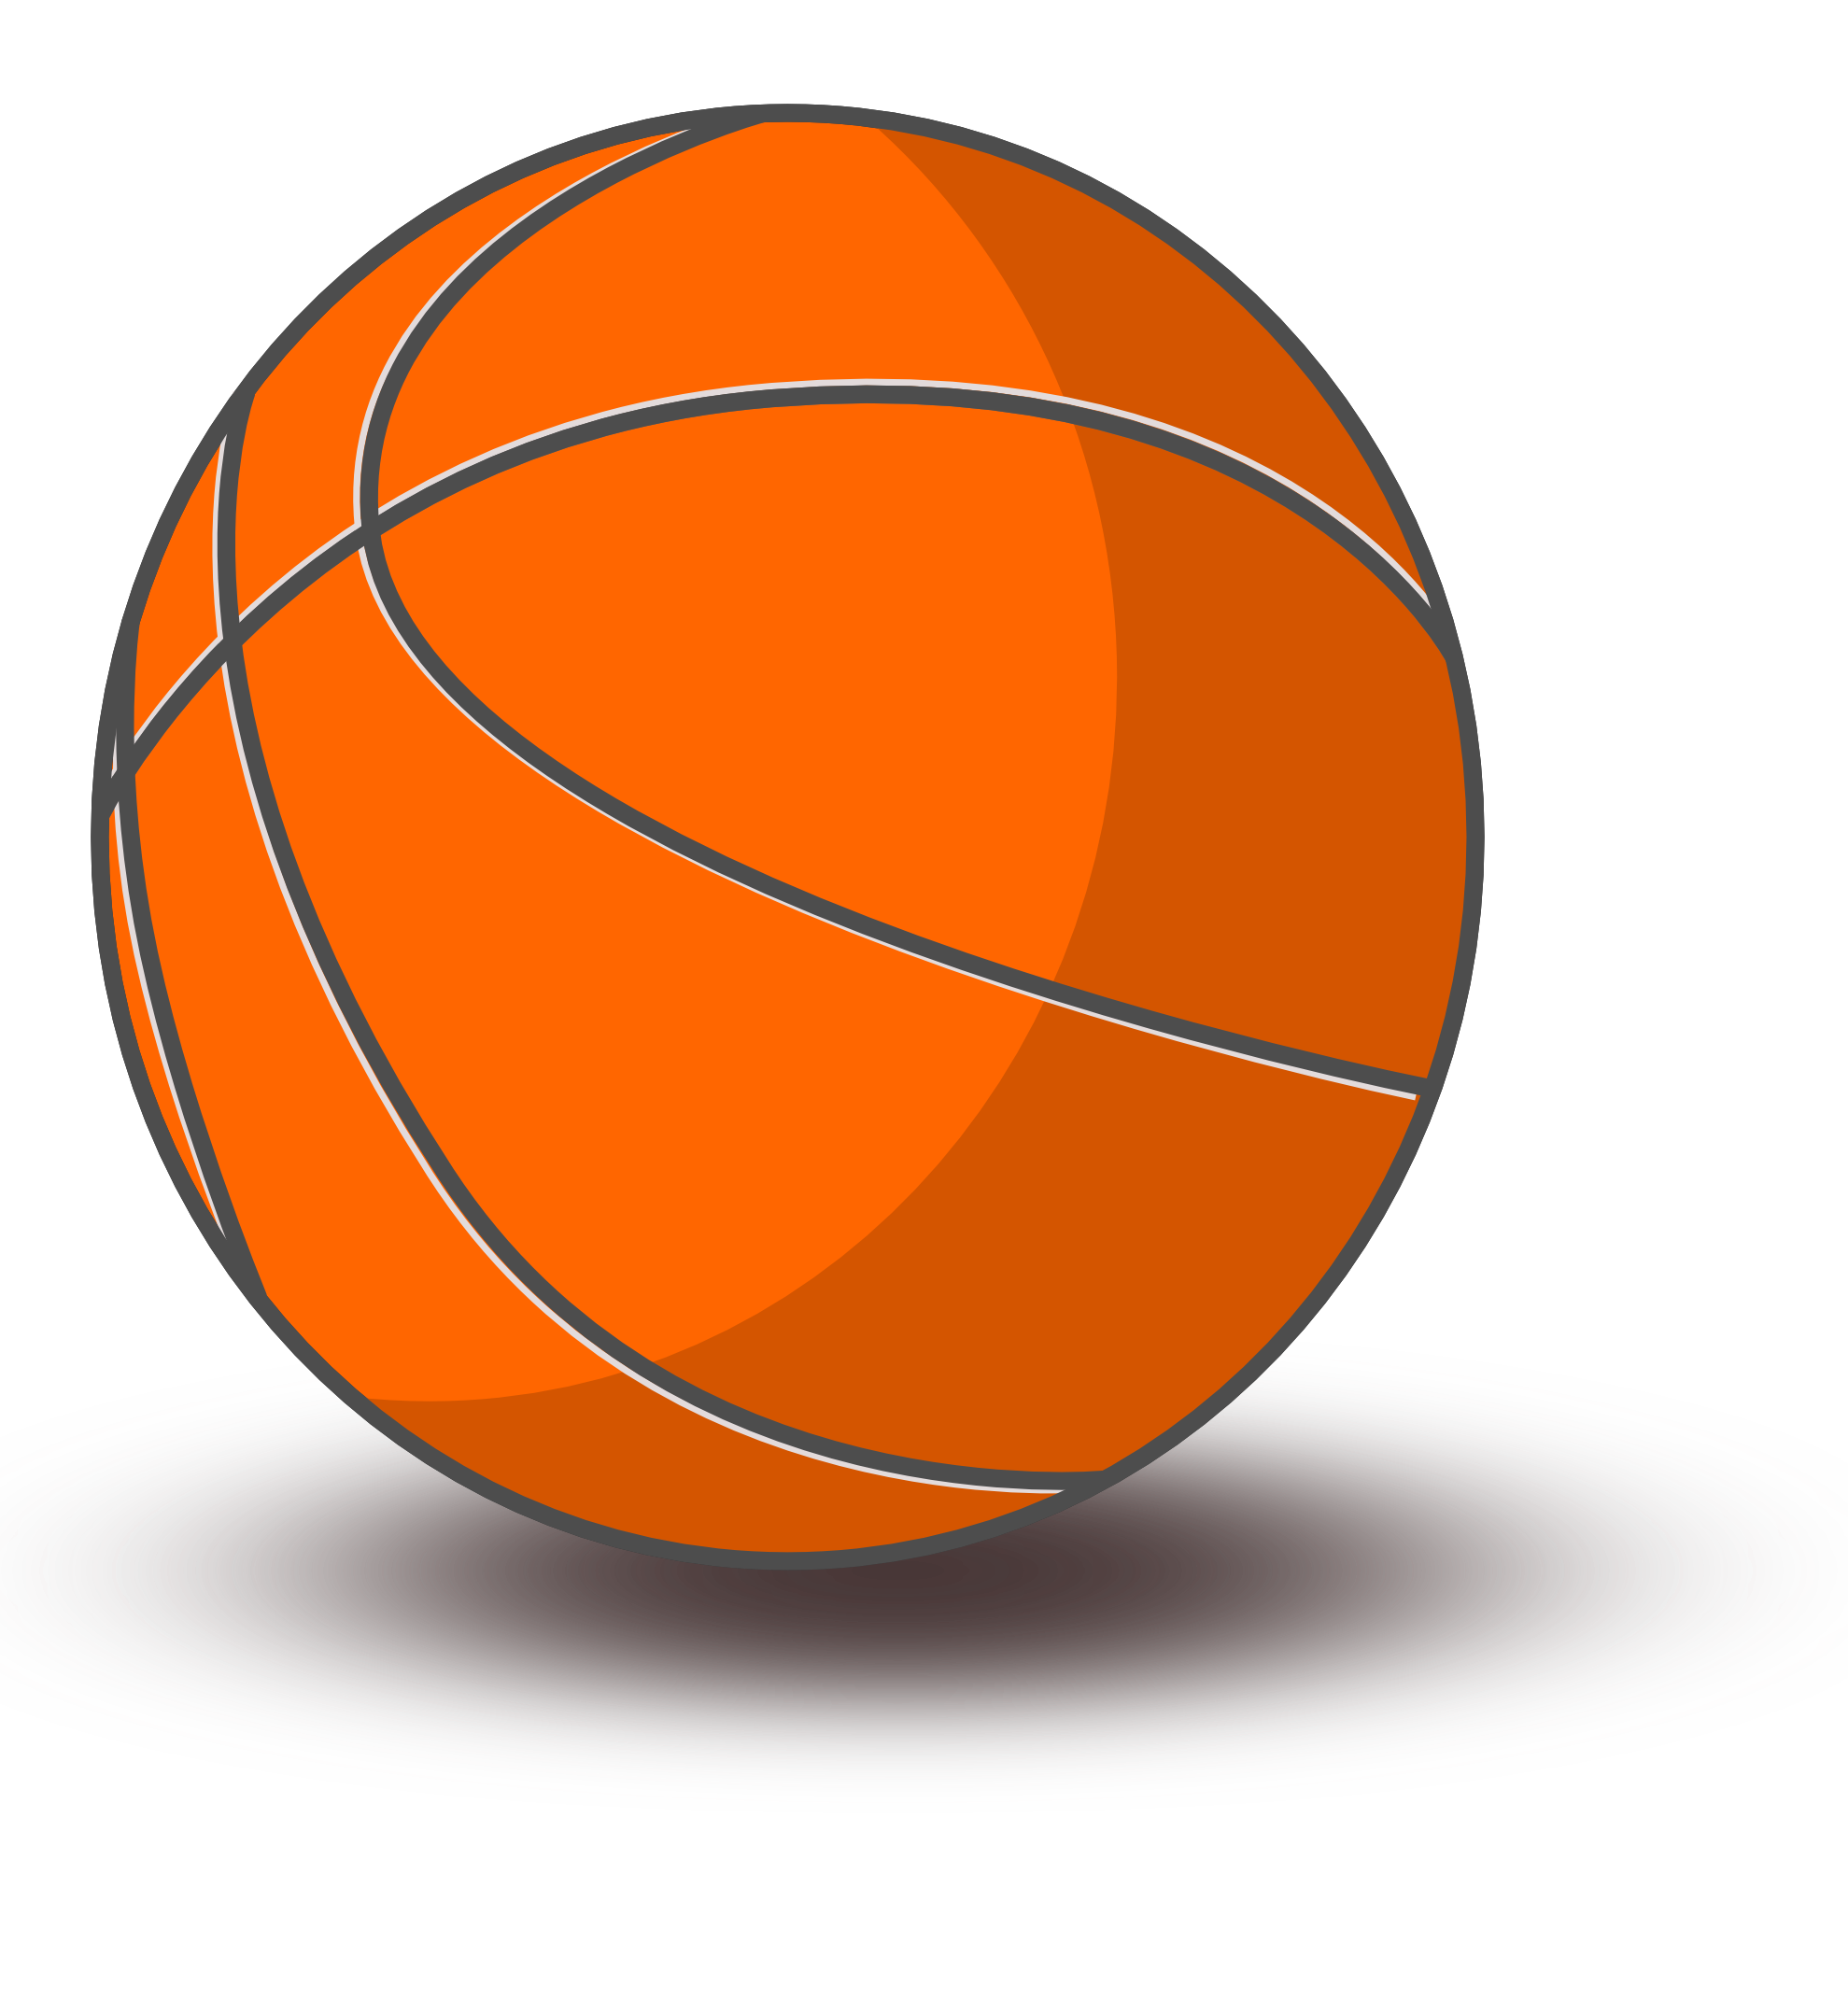 clip art library library Basketball clip transparent. Art background png